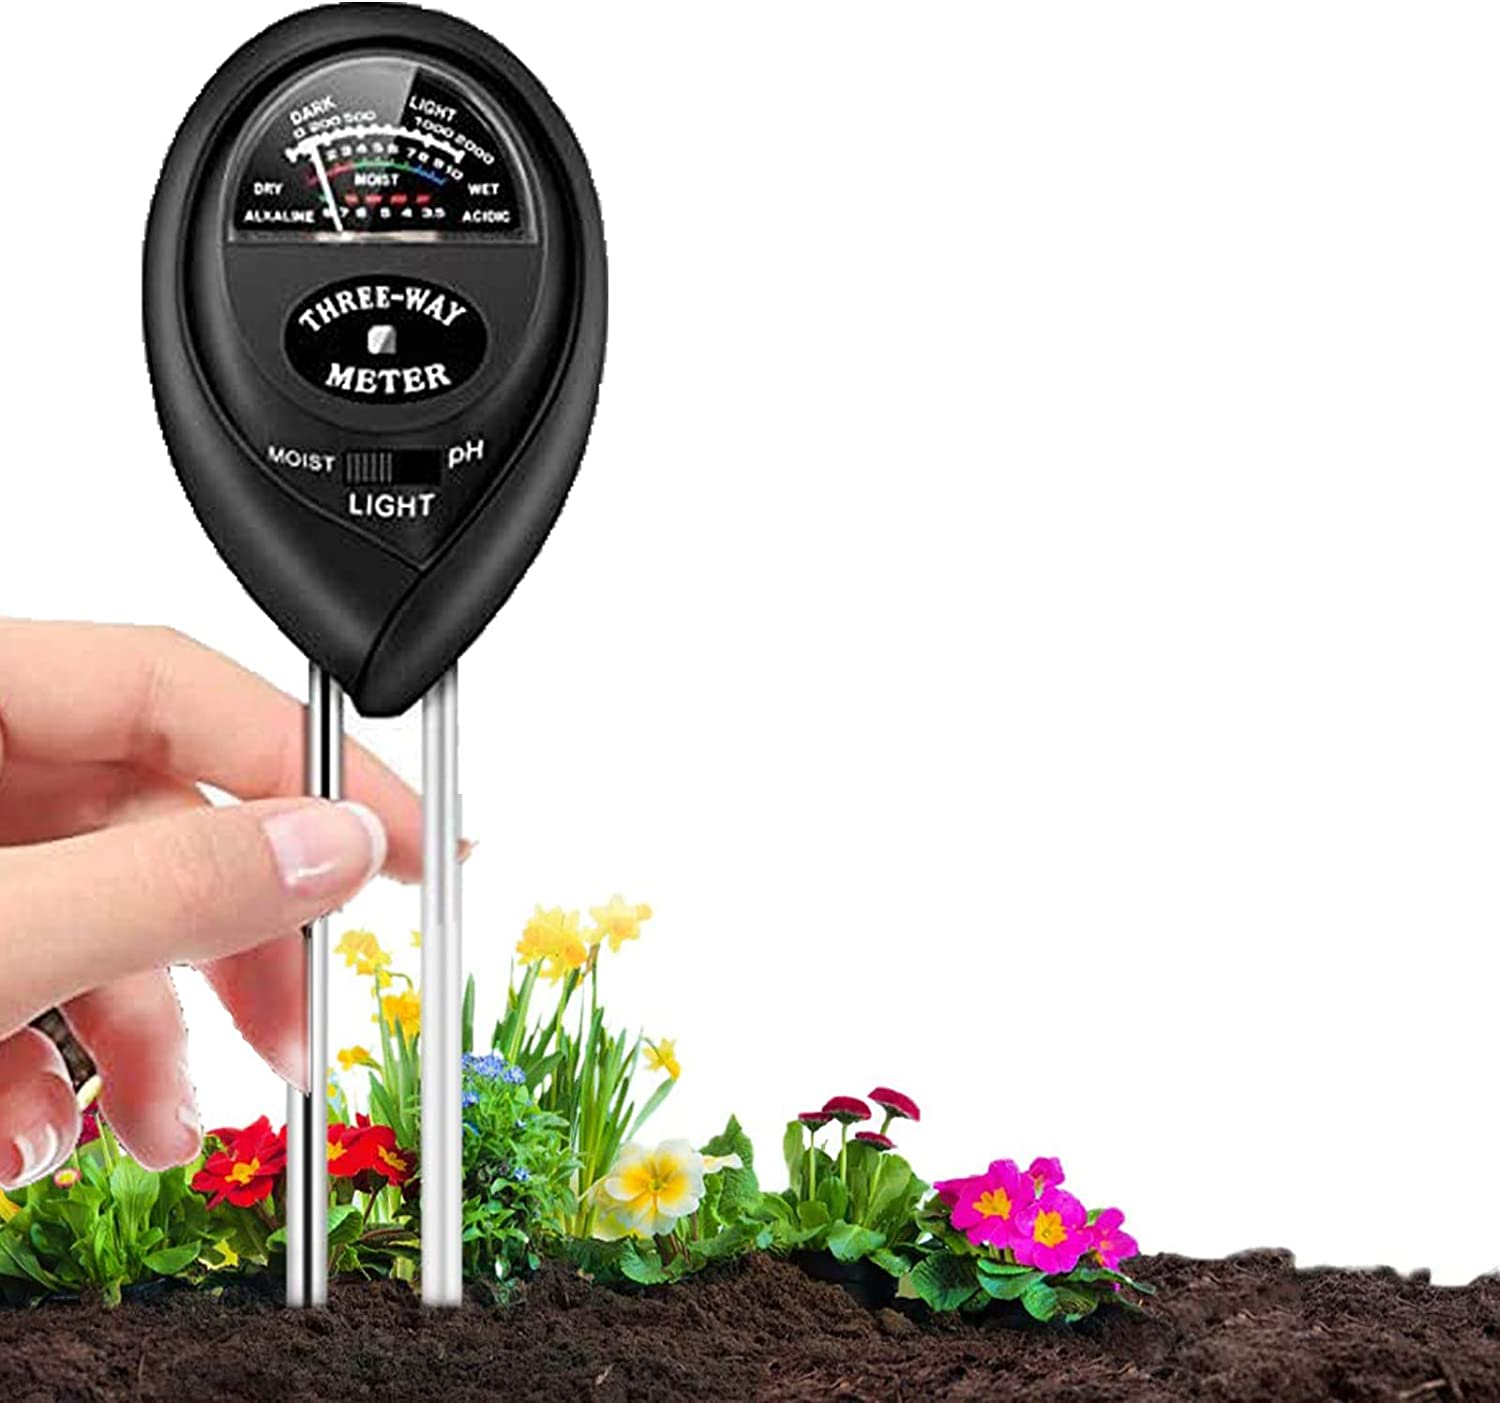 Farm Indoor /& Outdoor No Battery Needed 3-in-1 Soil Moisture//Light//pH Tester and Humidity Meter for Gardening Soil pH Meter Soil Moisture Meter Lawn